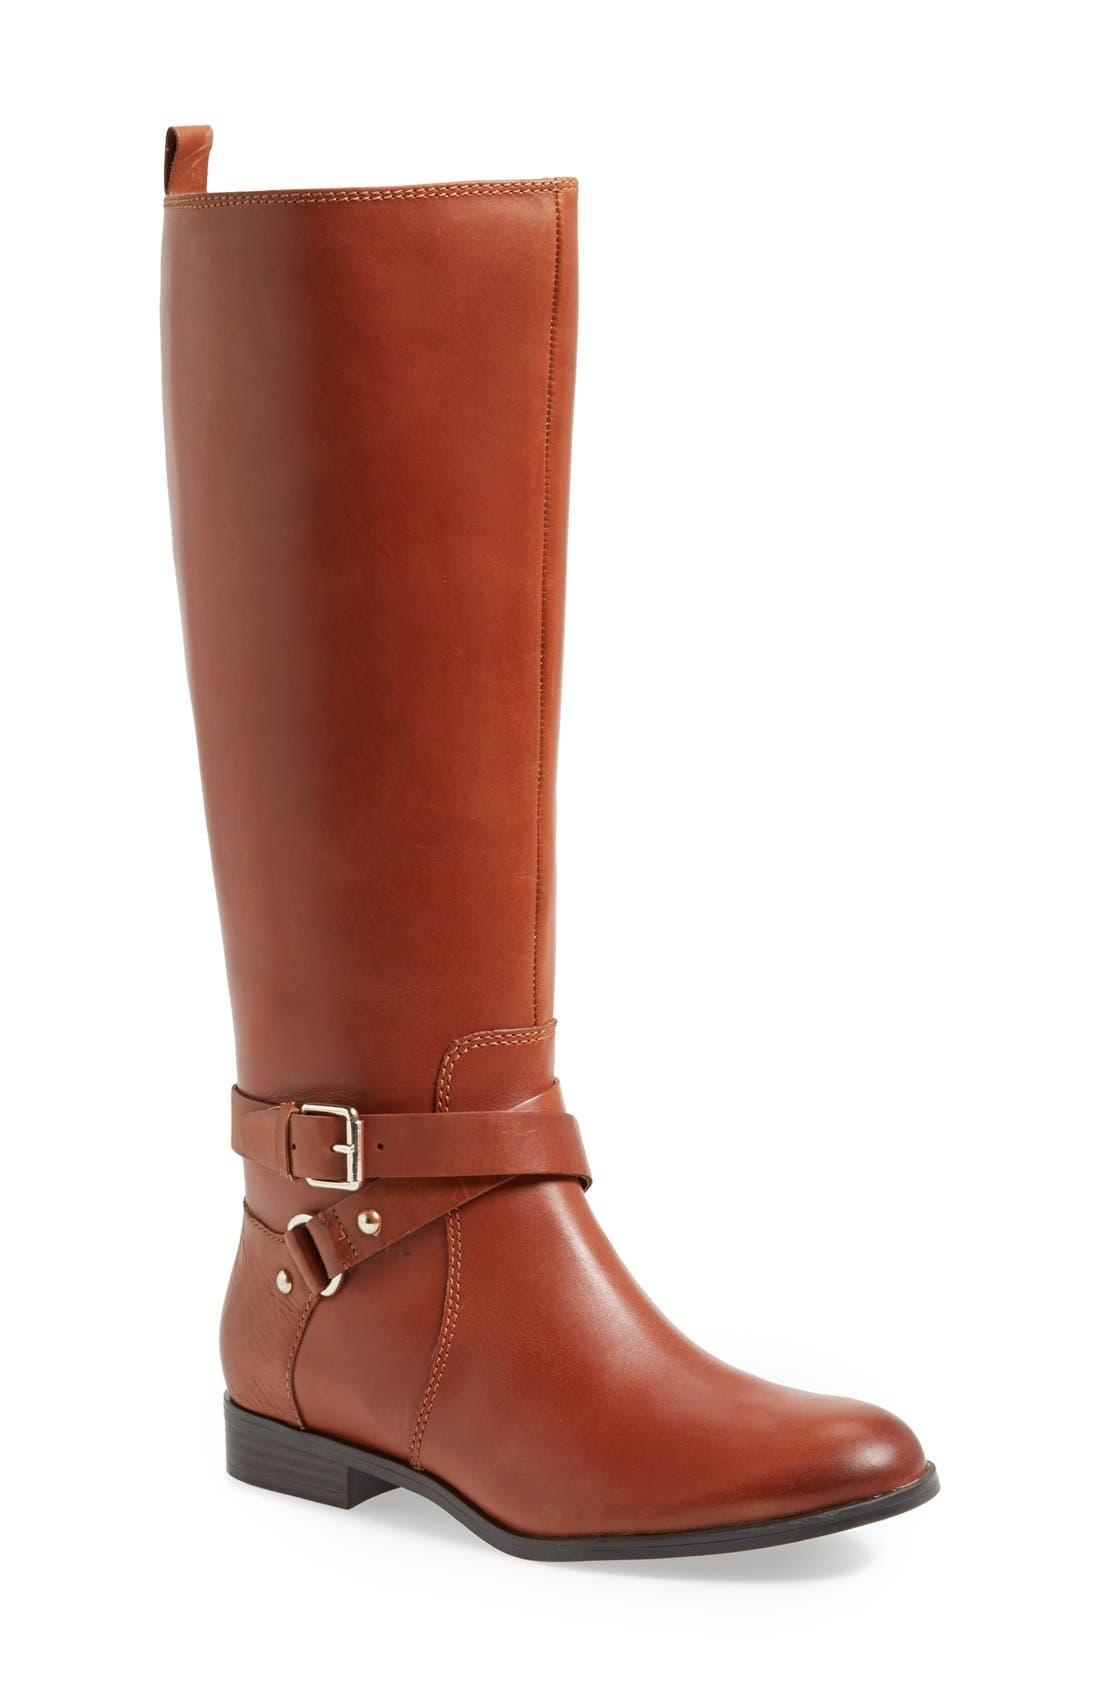 Alternate Image 1 Selected - Enzo Angiolini 'Daniana' Knee High Leather Boot (Wide Calf) (Women)